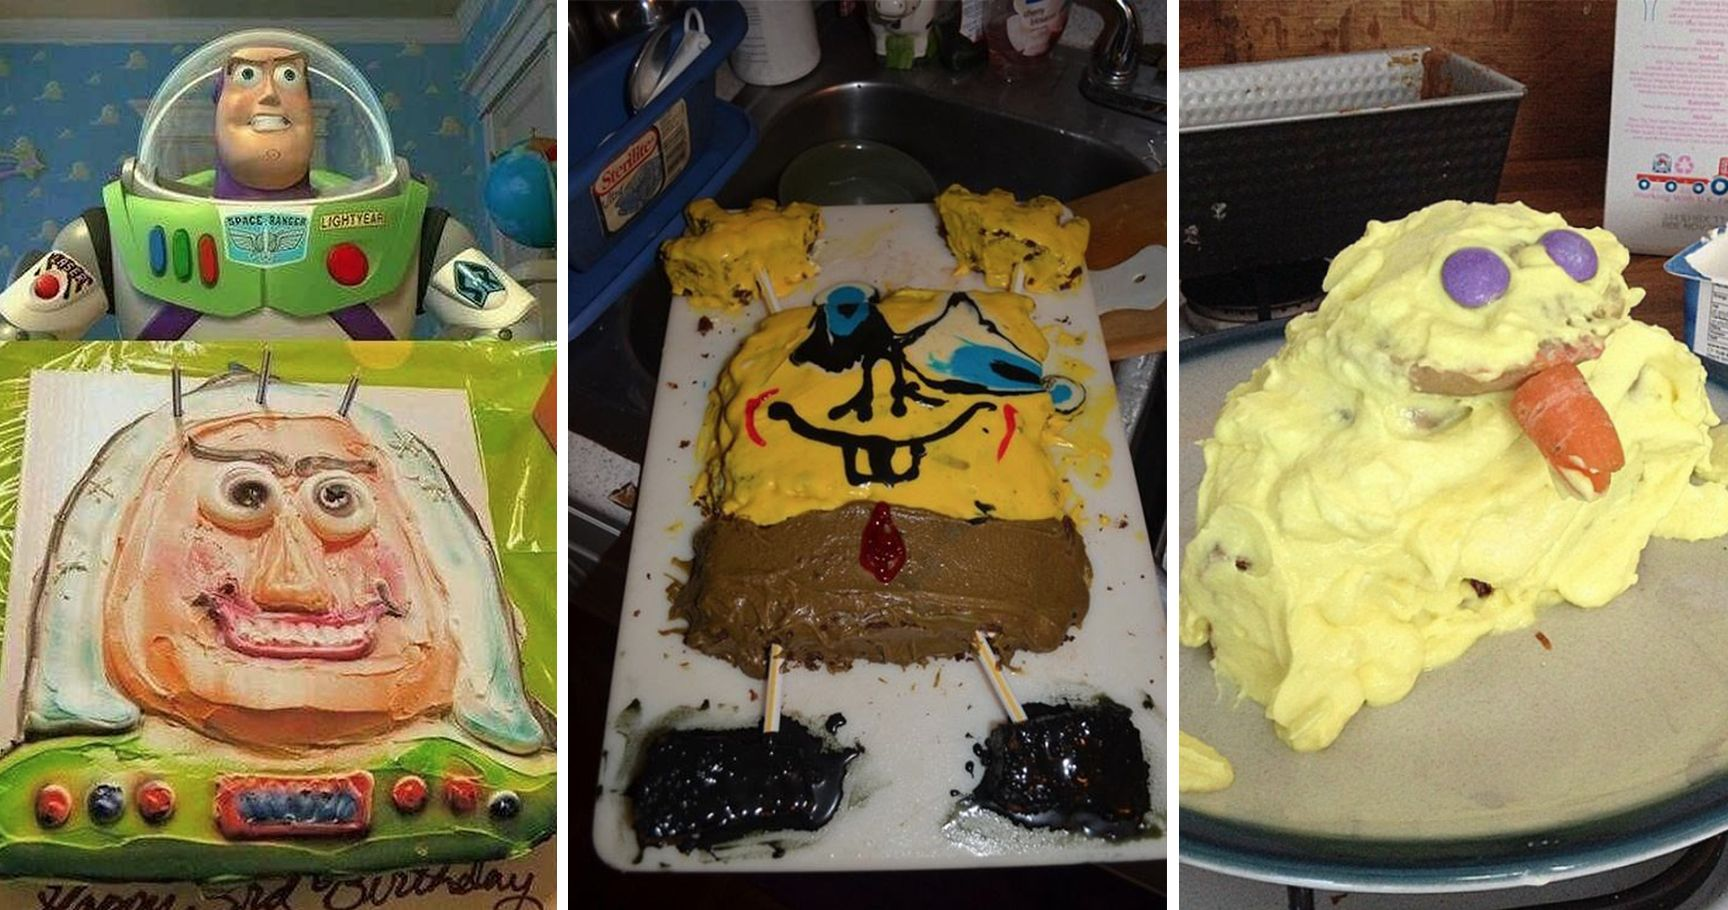 15 Birthday Cake Fails So Bad, They Would Make You Cry